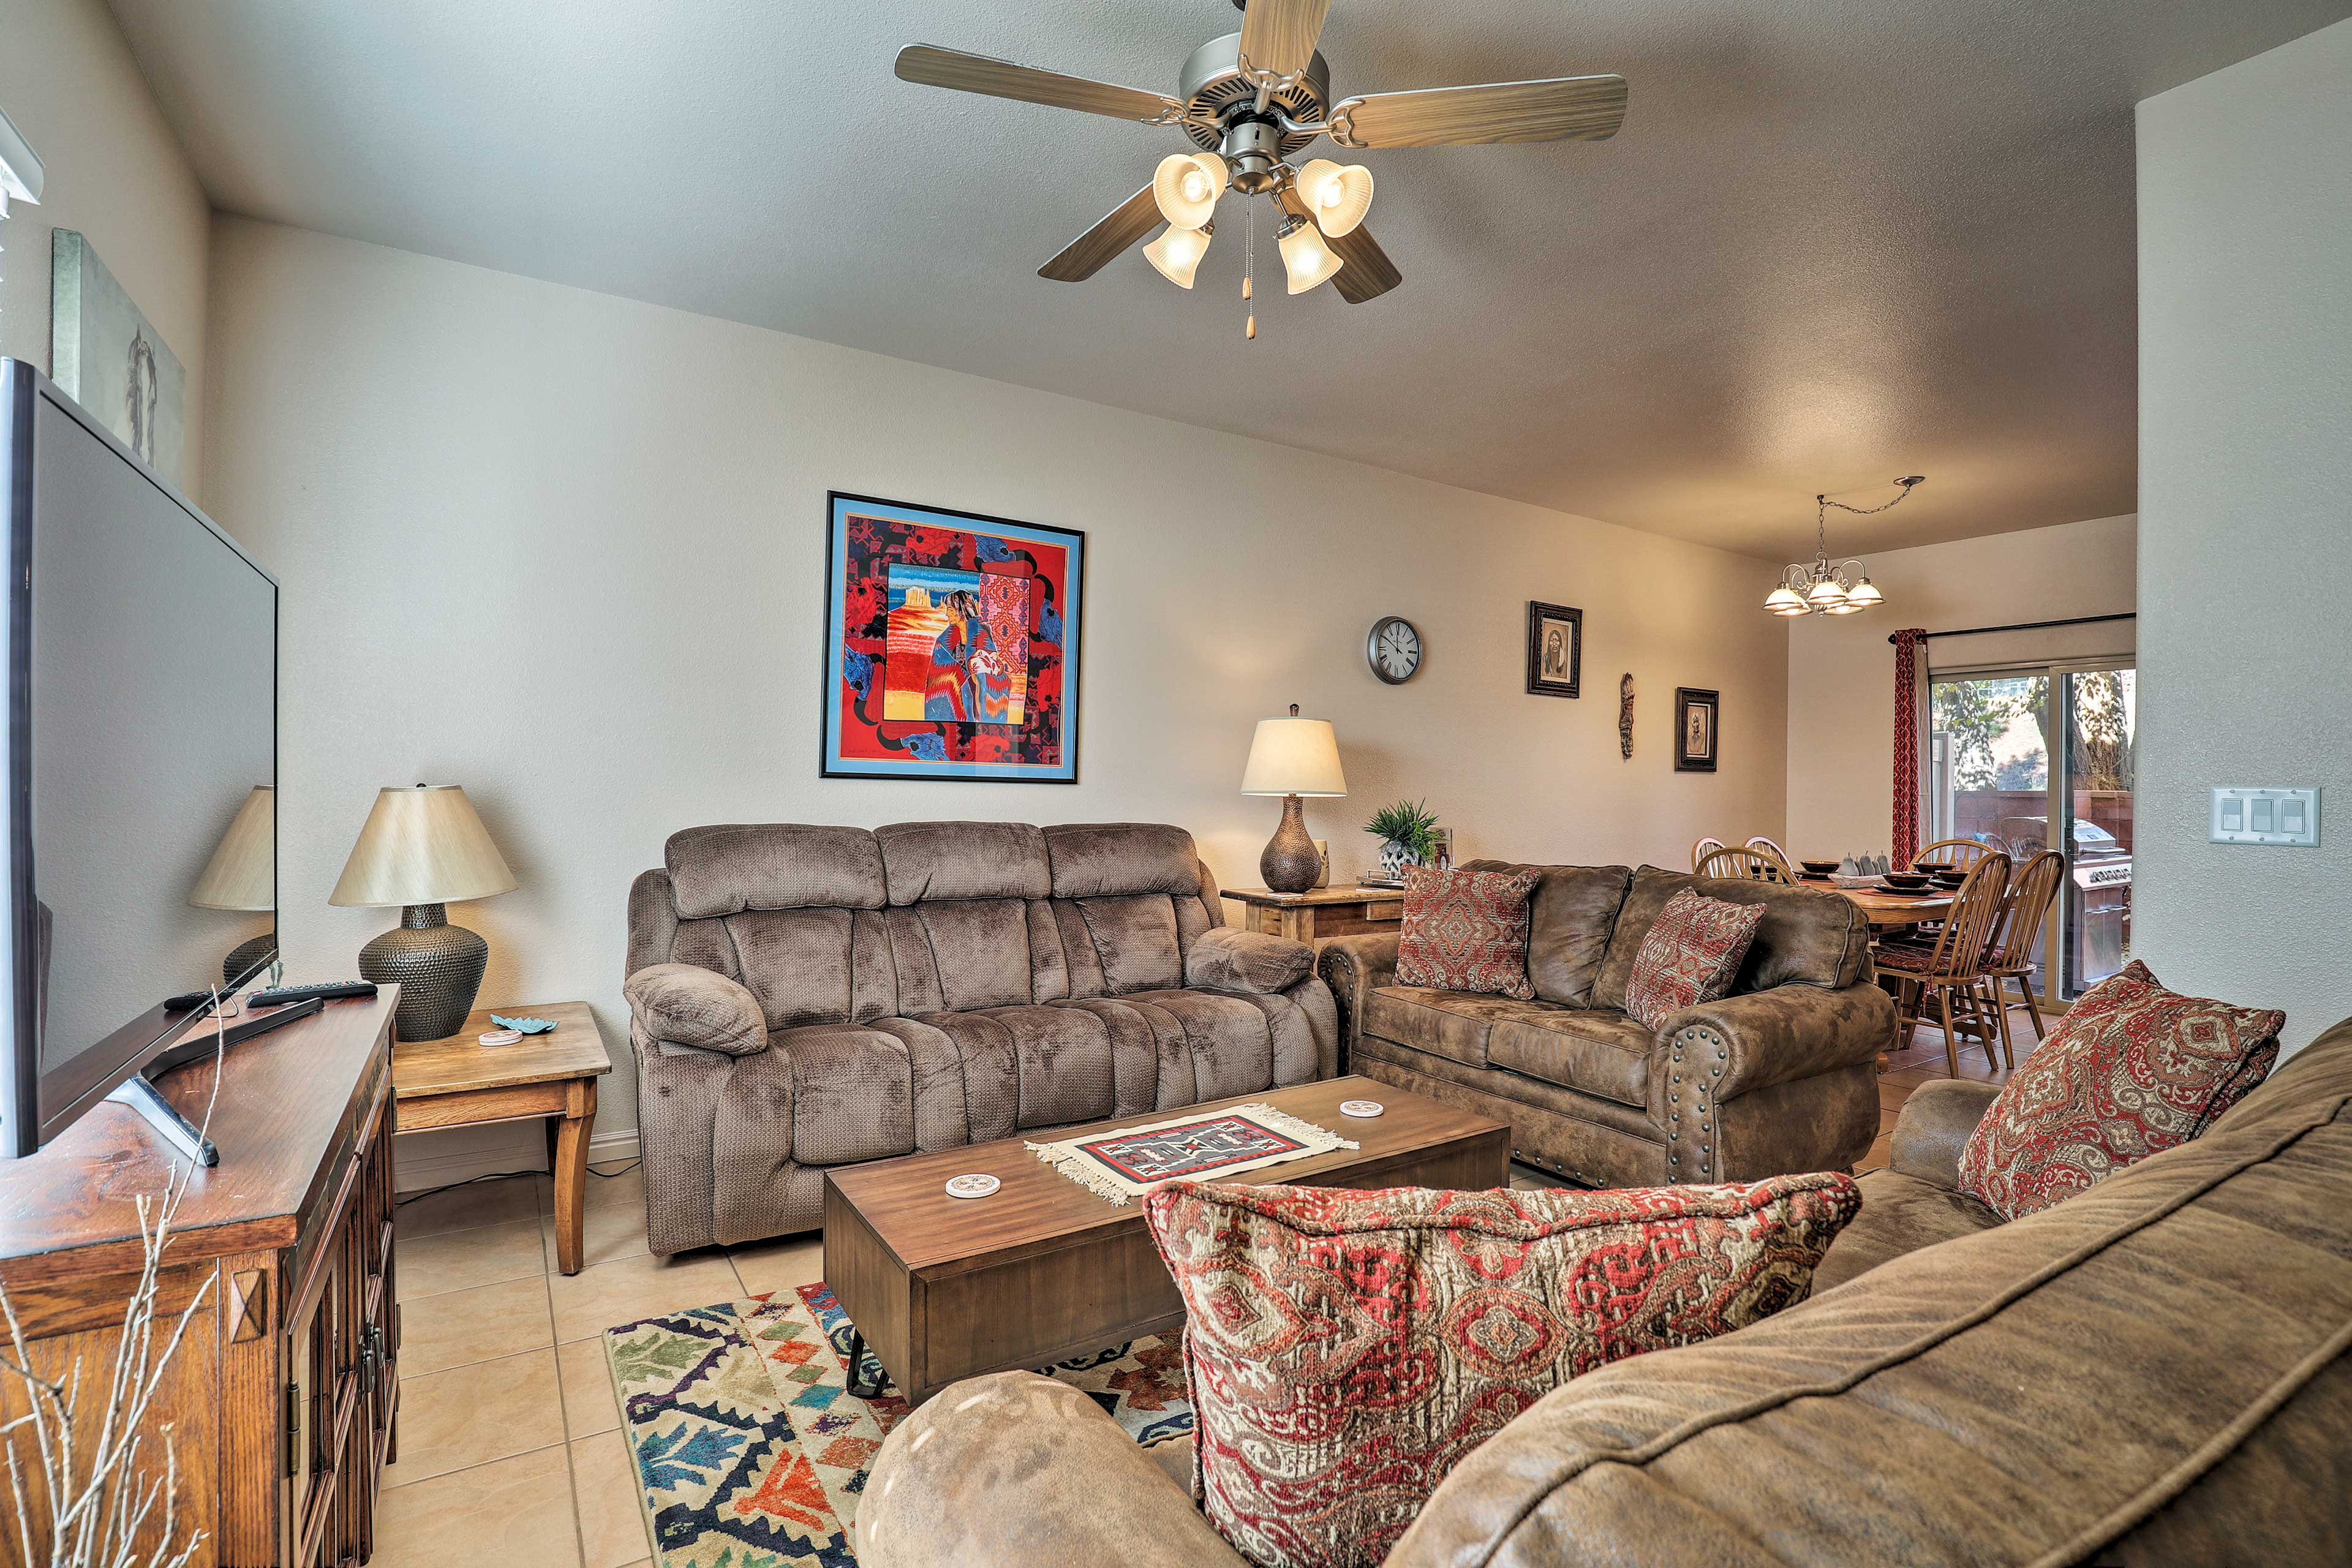 The spacious interior boasts 1,245 square feet for 6 guests.